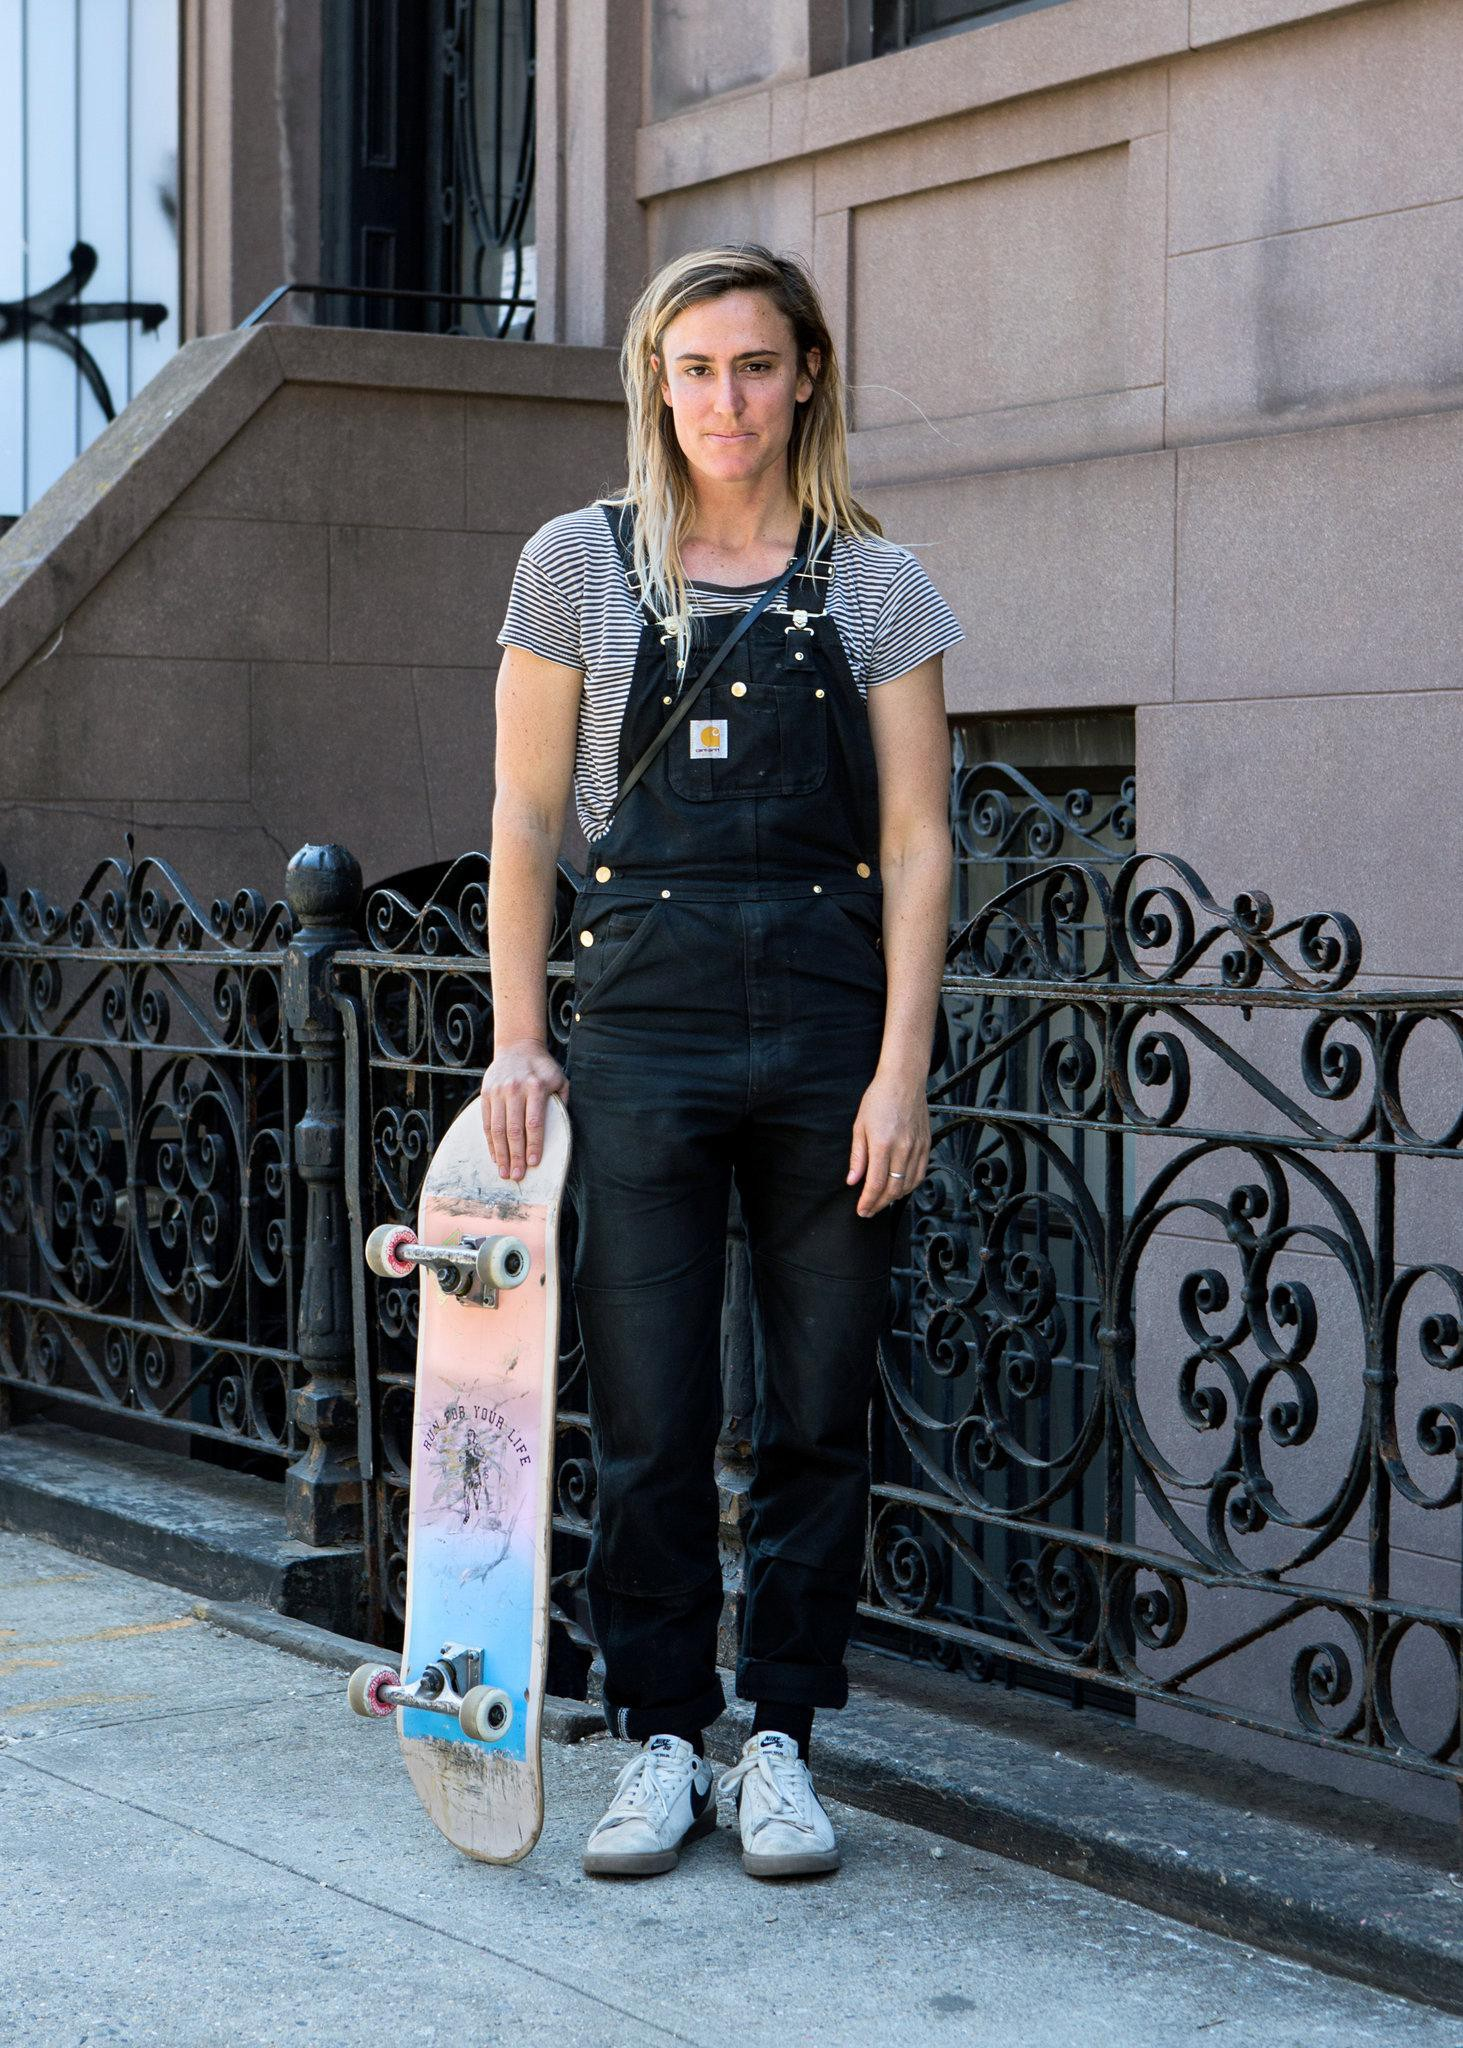 32c100d7a54fd8 Sara Taylor was photographed for a New York Times article on skate fashion.